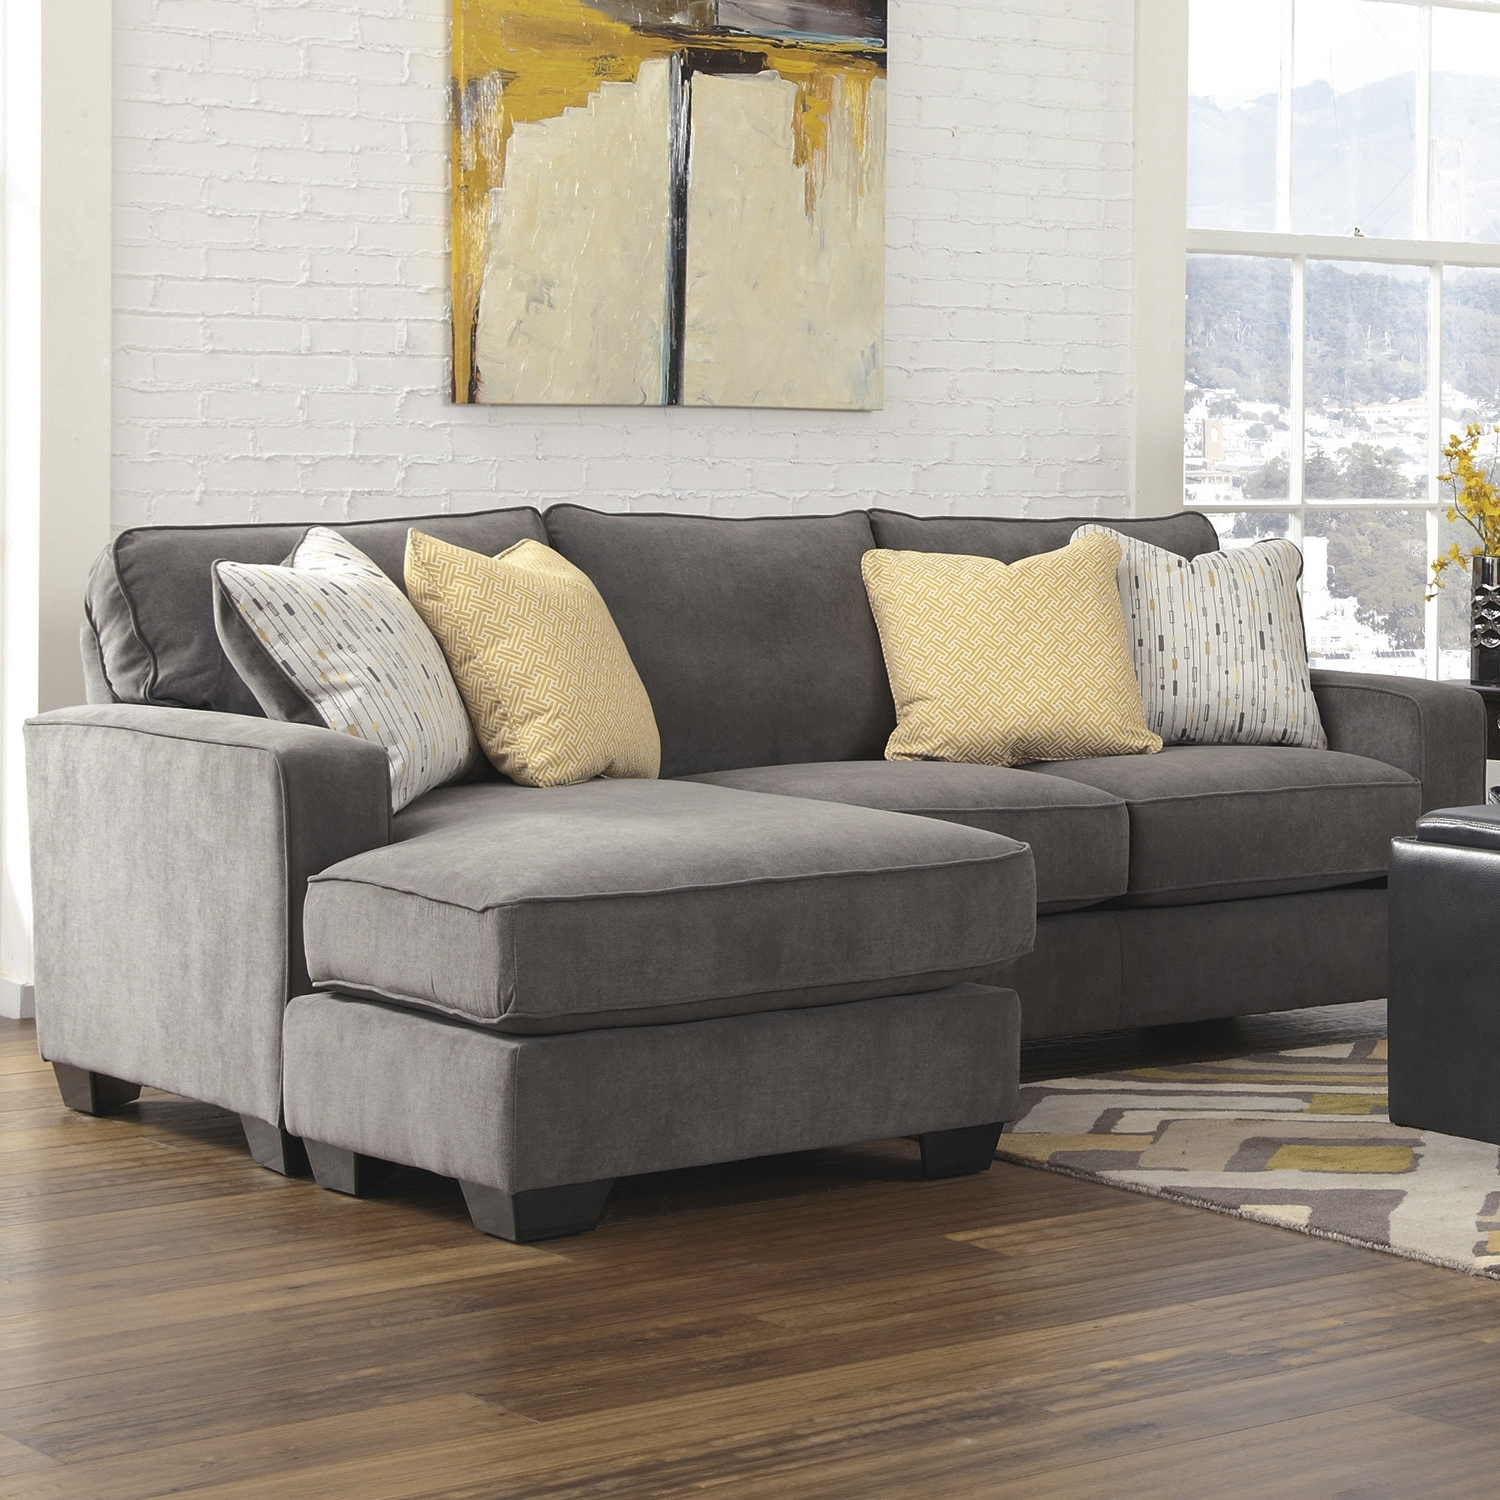 Newest 100X100 Sectional Sofas Within Sectional Sofas (View 18 of 20)